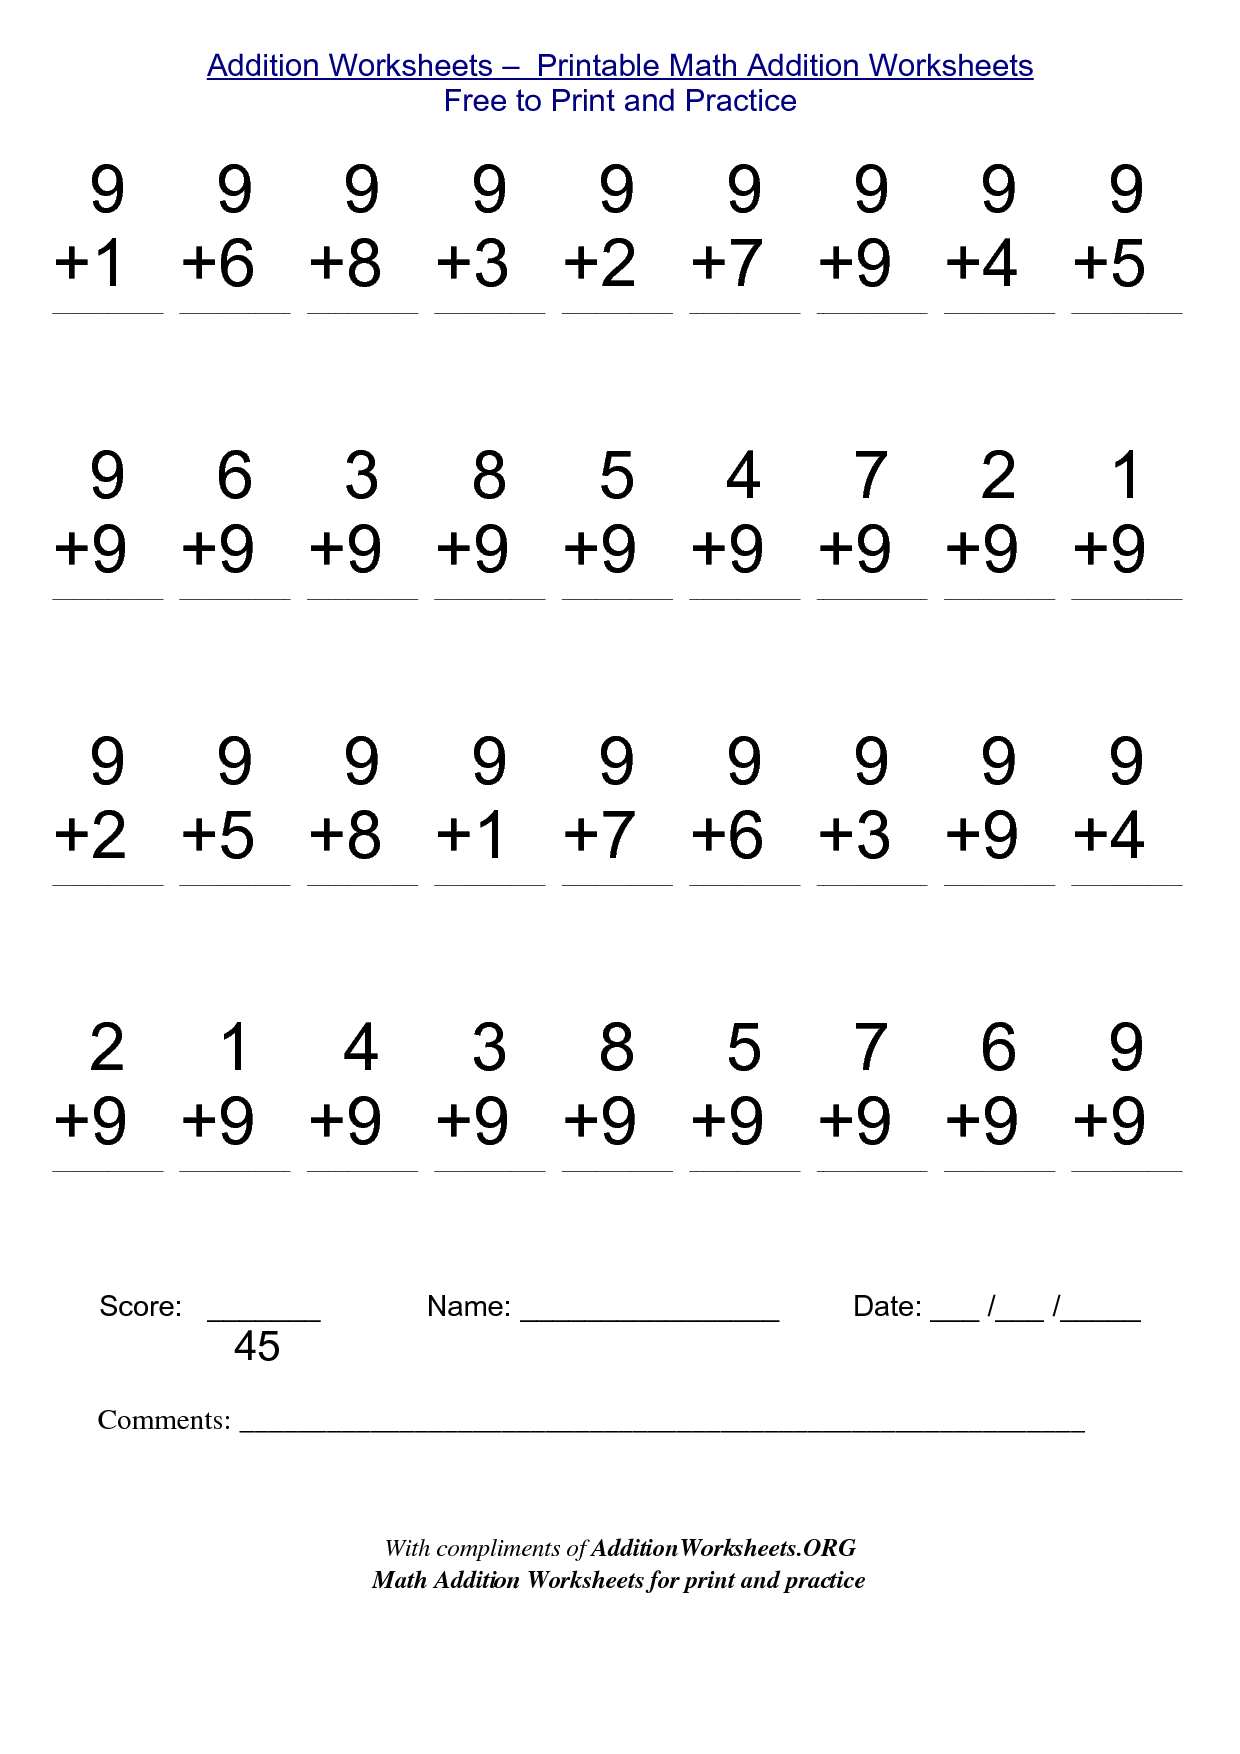 Worksheet Addition Sheets For First Grade 1st grade math worksheets printable addition intrepidpath 4 best images of printable